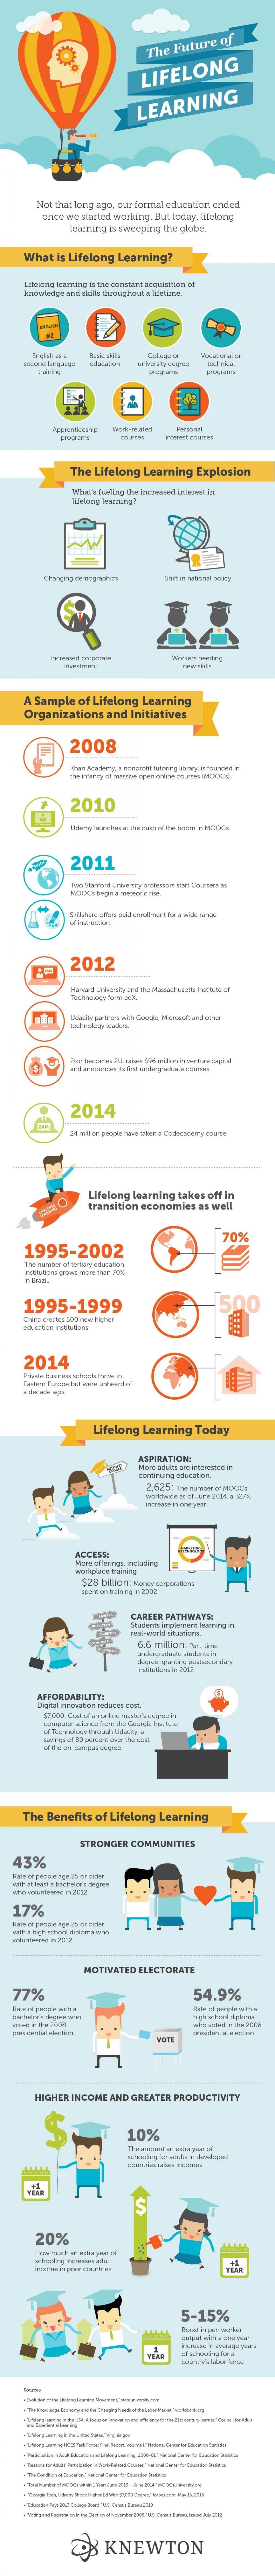 The Future of Lifelong Learning Infographic